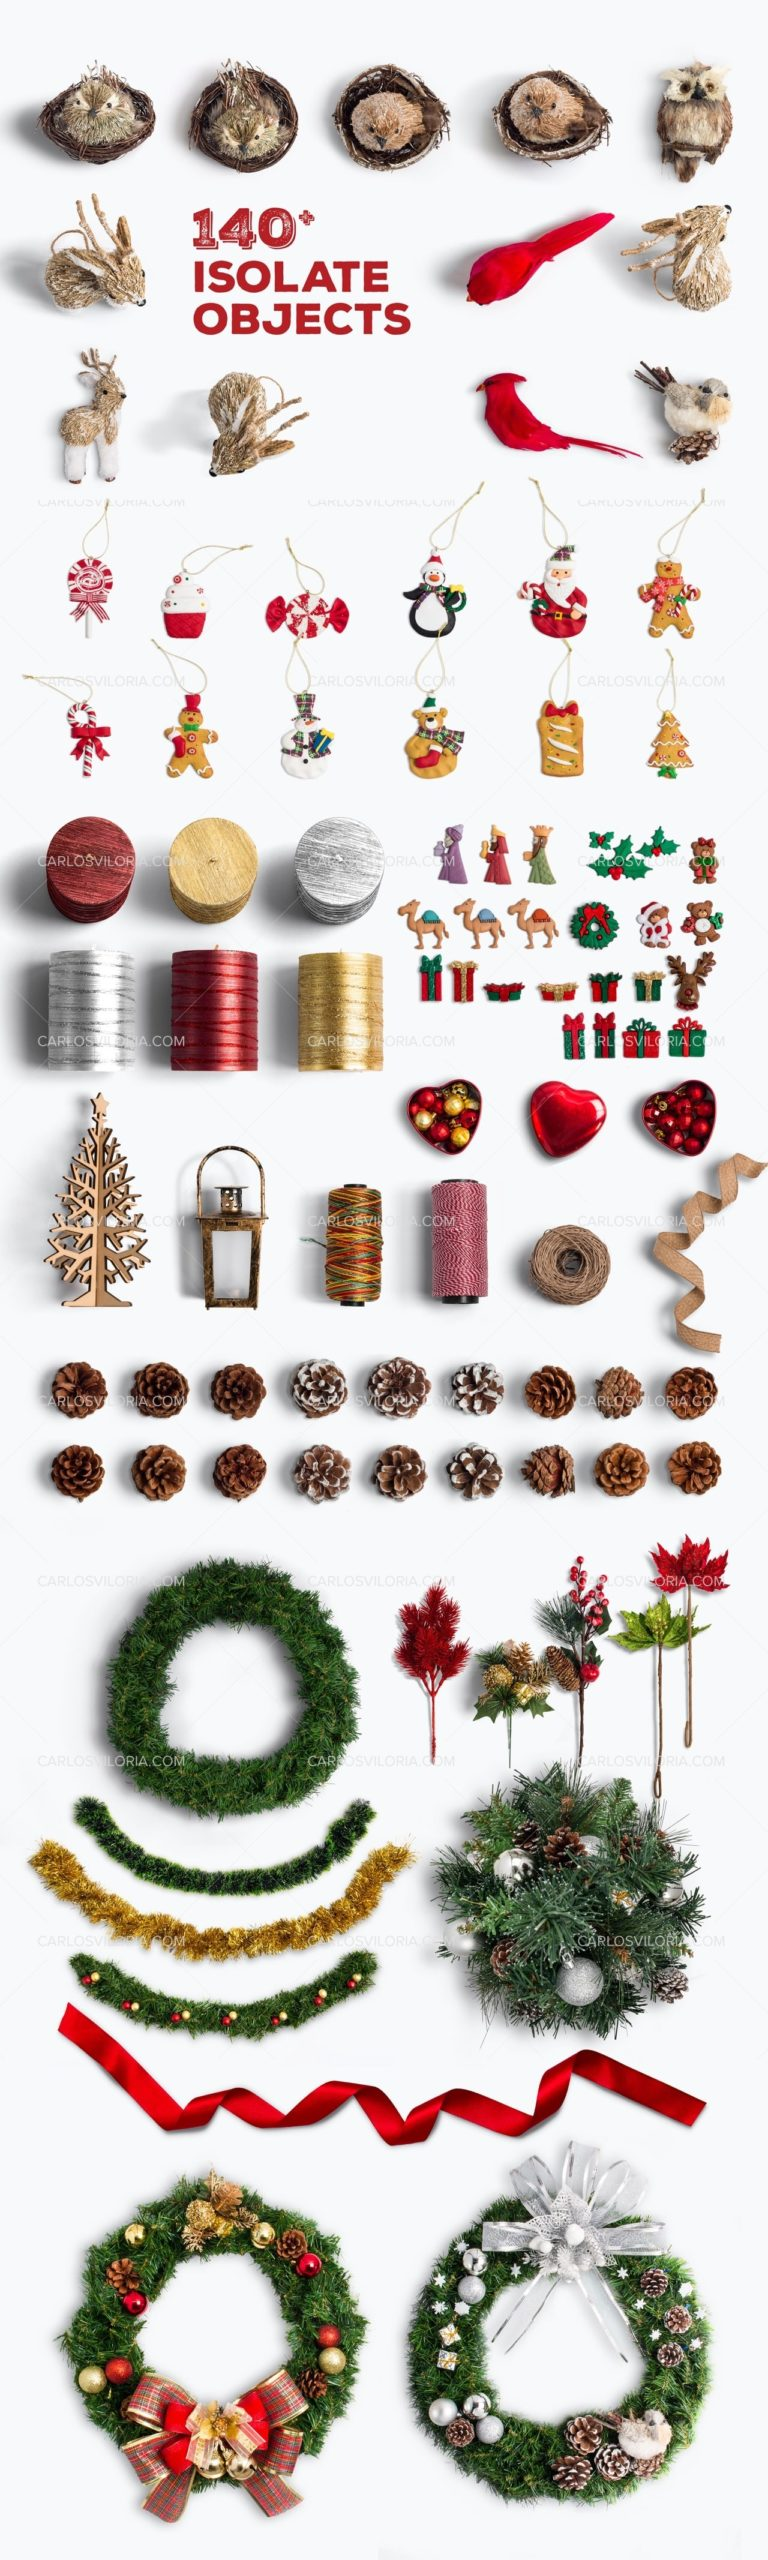 Isolated Christmas Objects by Carlos Viloria